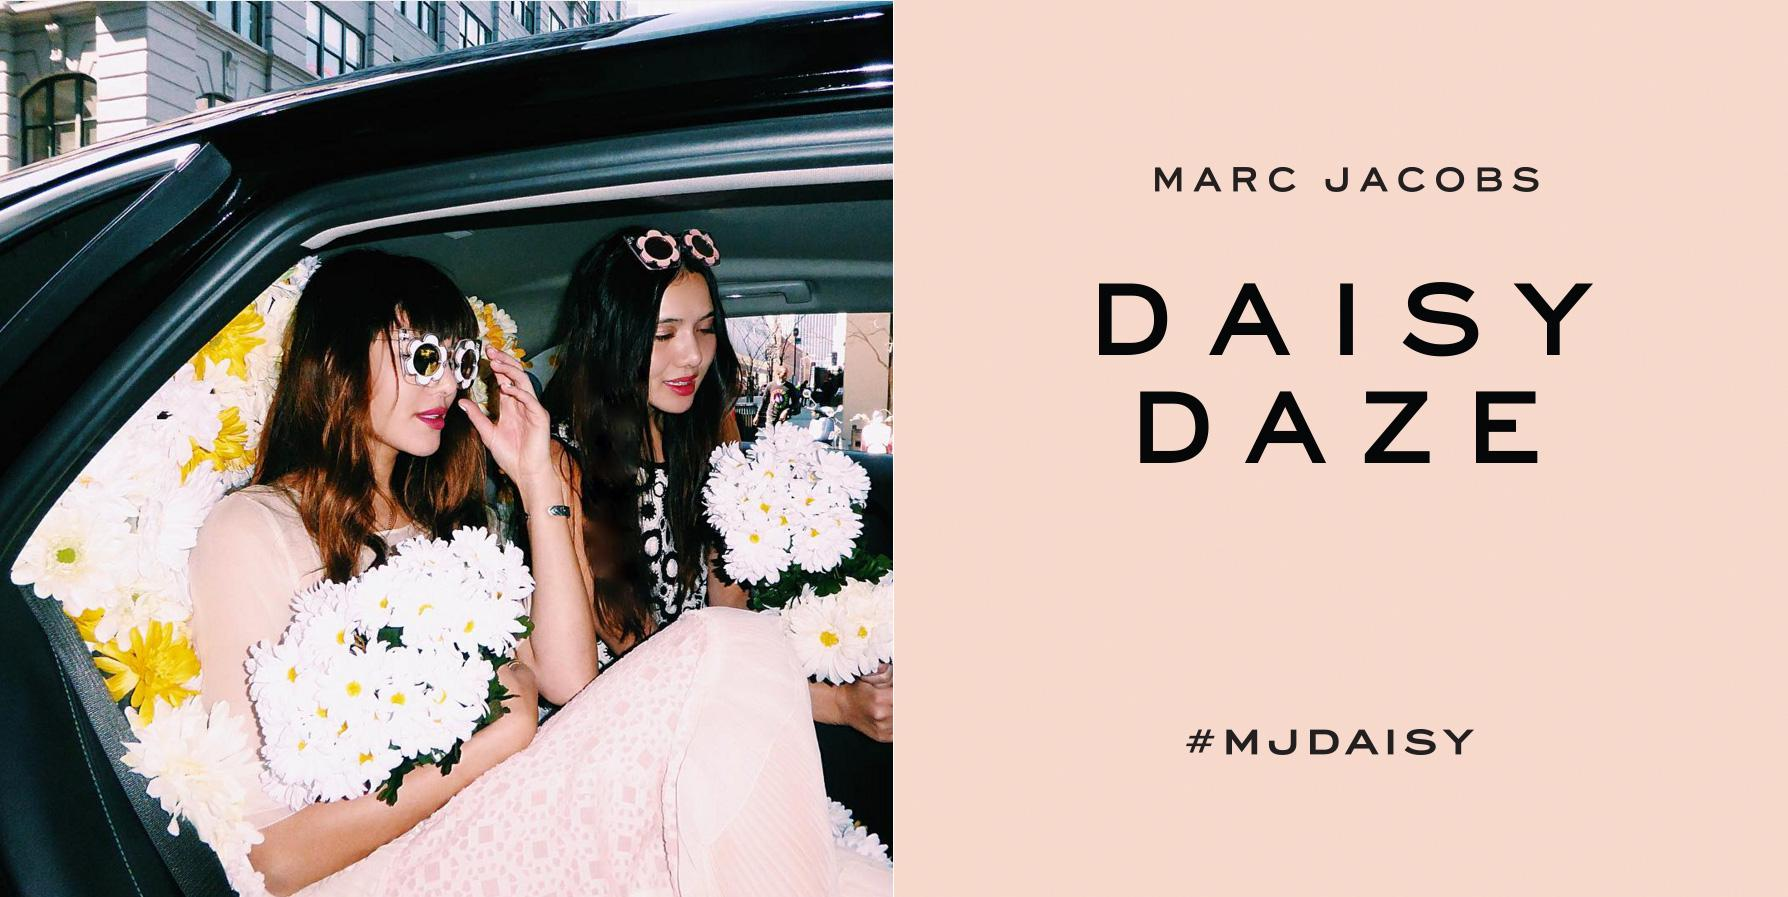 Thumbnail for Marc Jacobs Daisy Daze